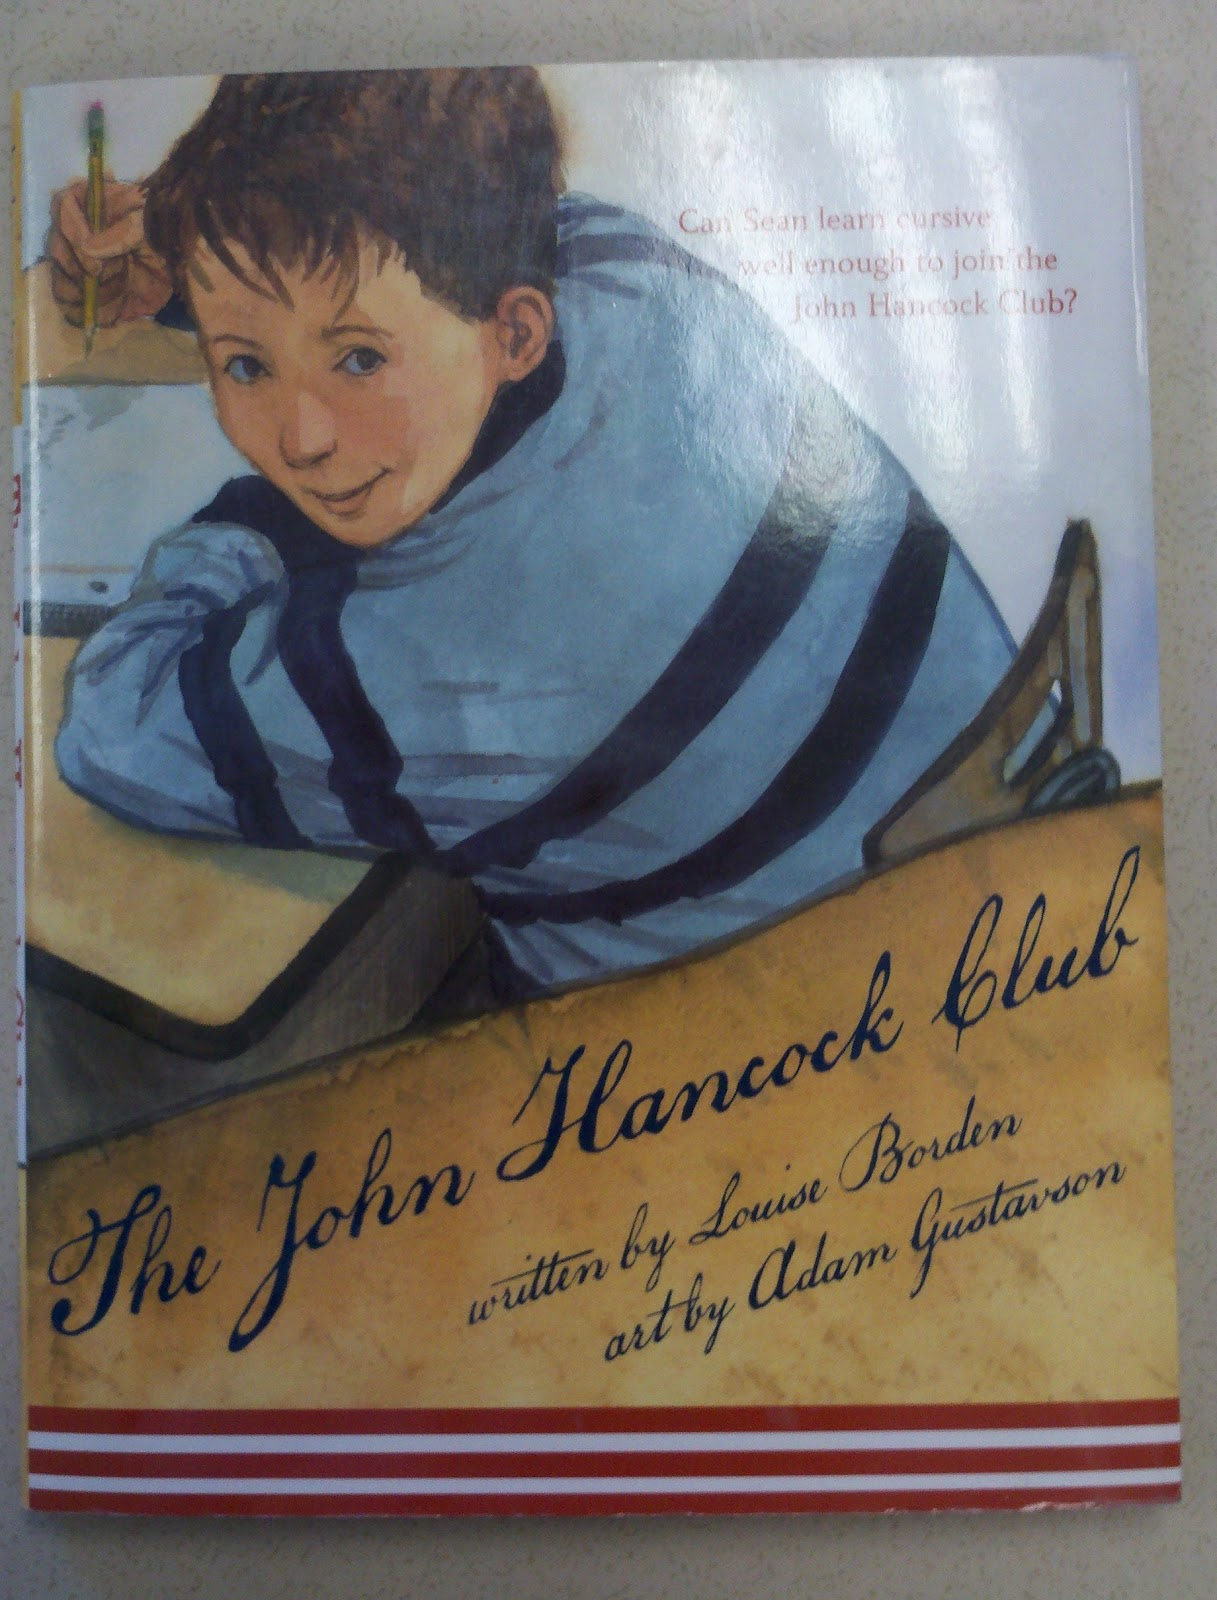 You Can Make The Sun Shine Anytime John Hancock Club Motivate Your Students To Learn Cursive